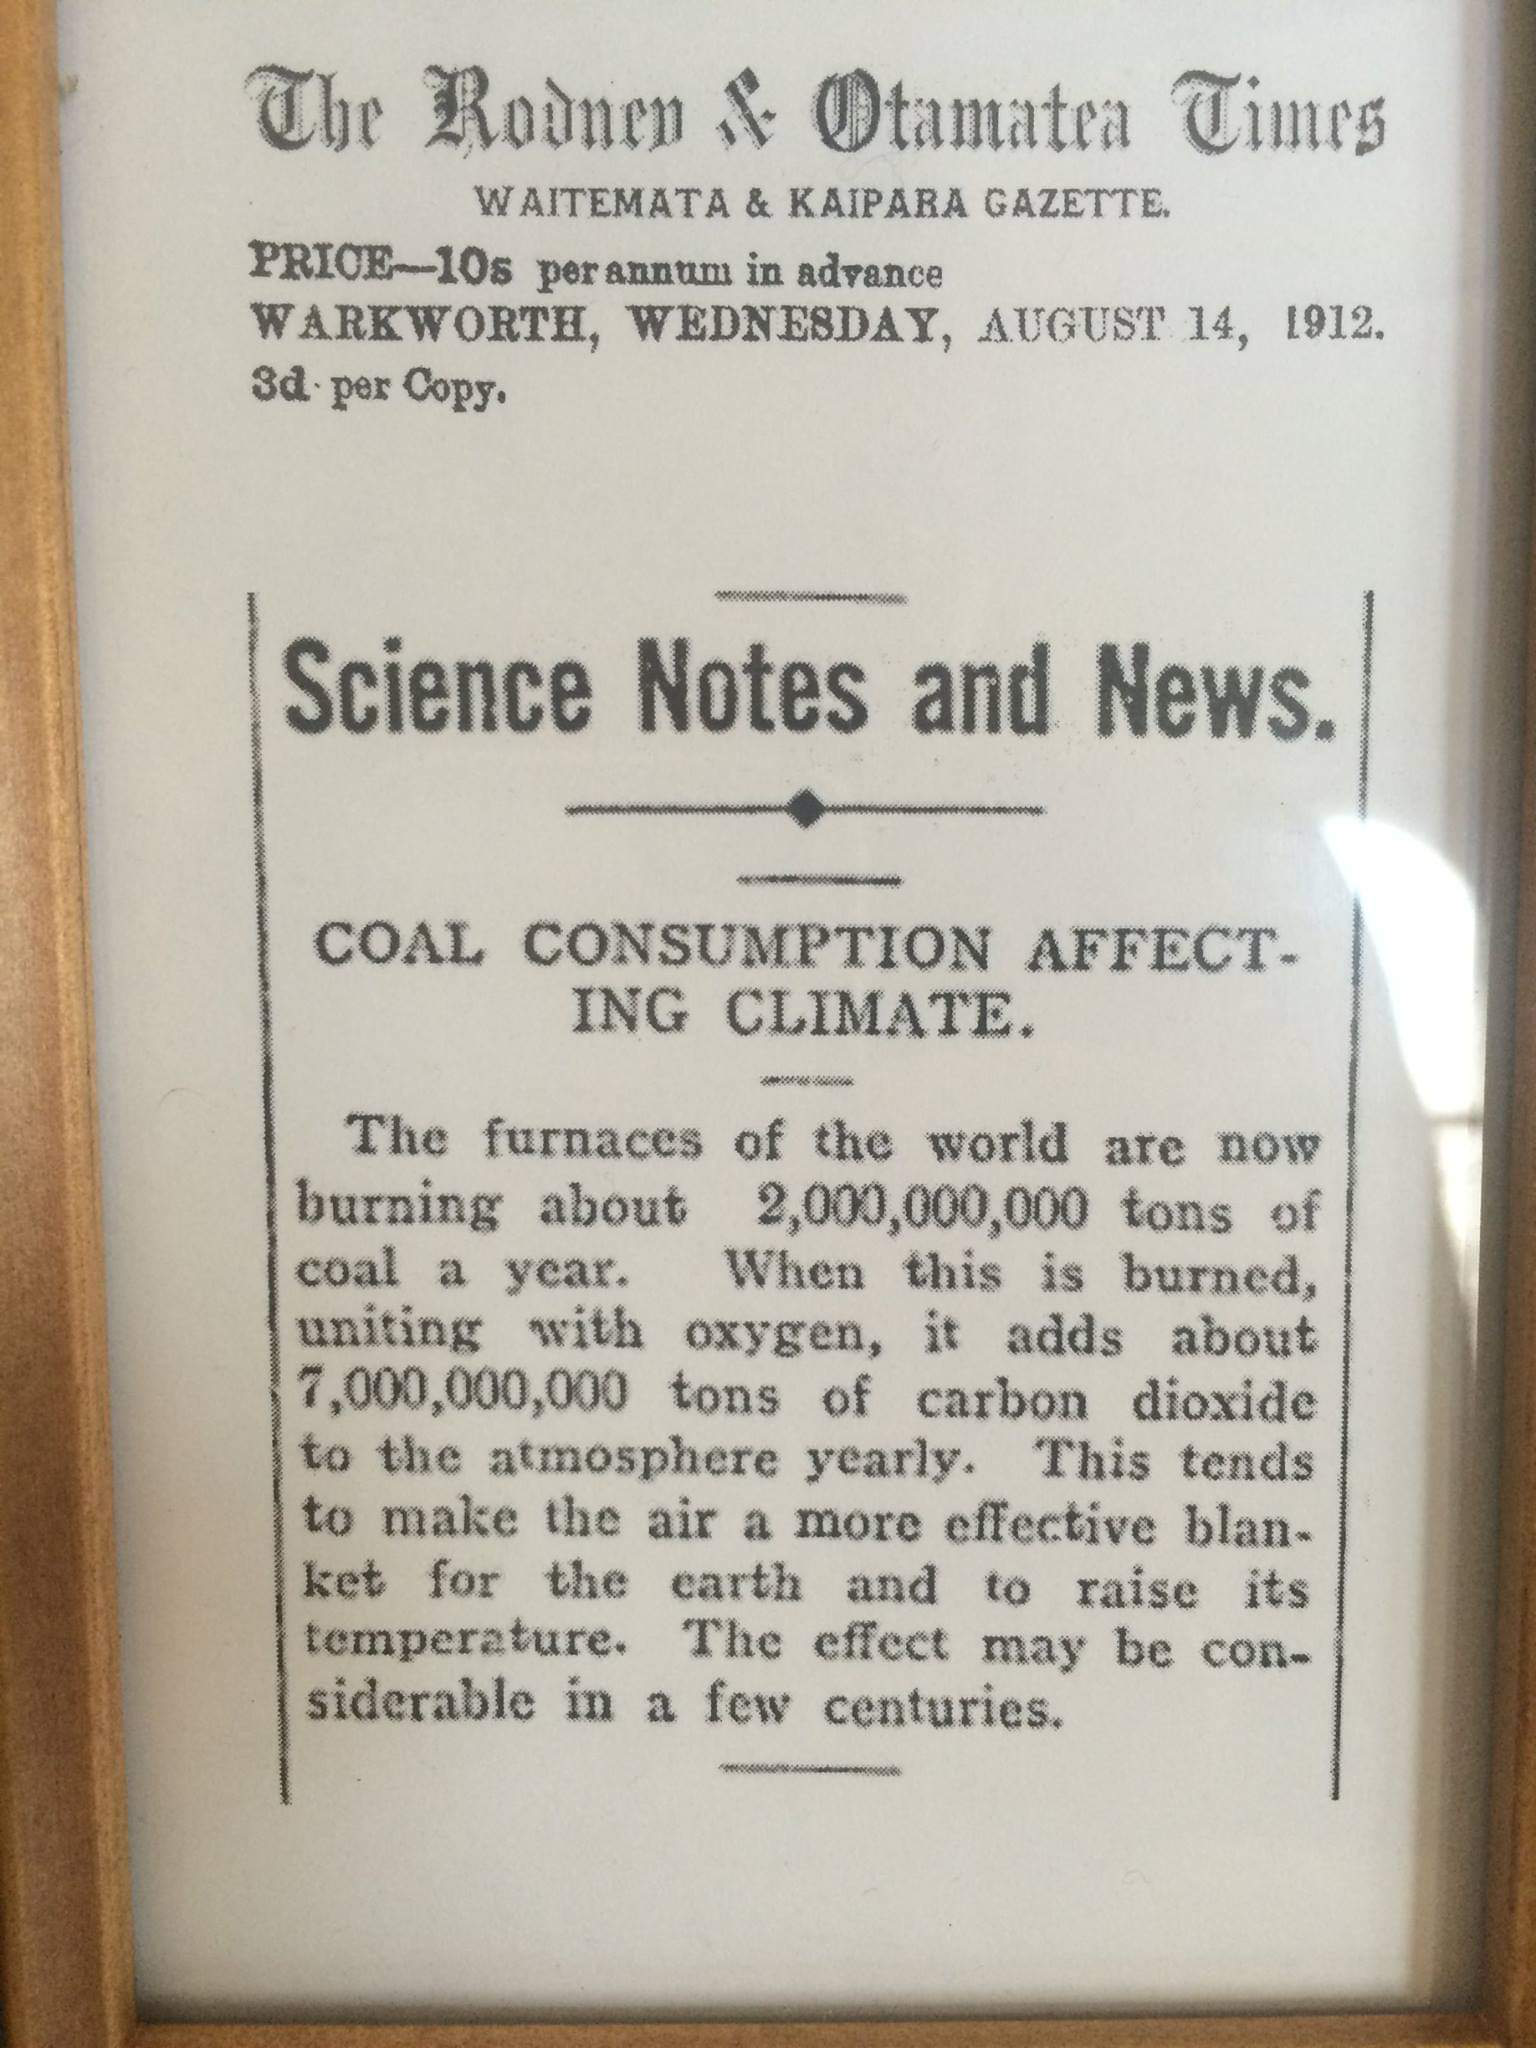 https://www.snopes.com/fact-check/1912-article-global-warming/